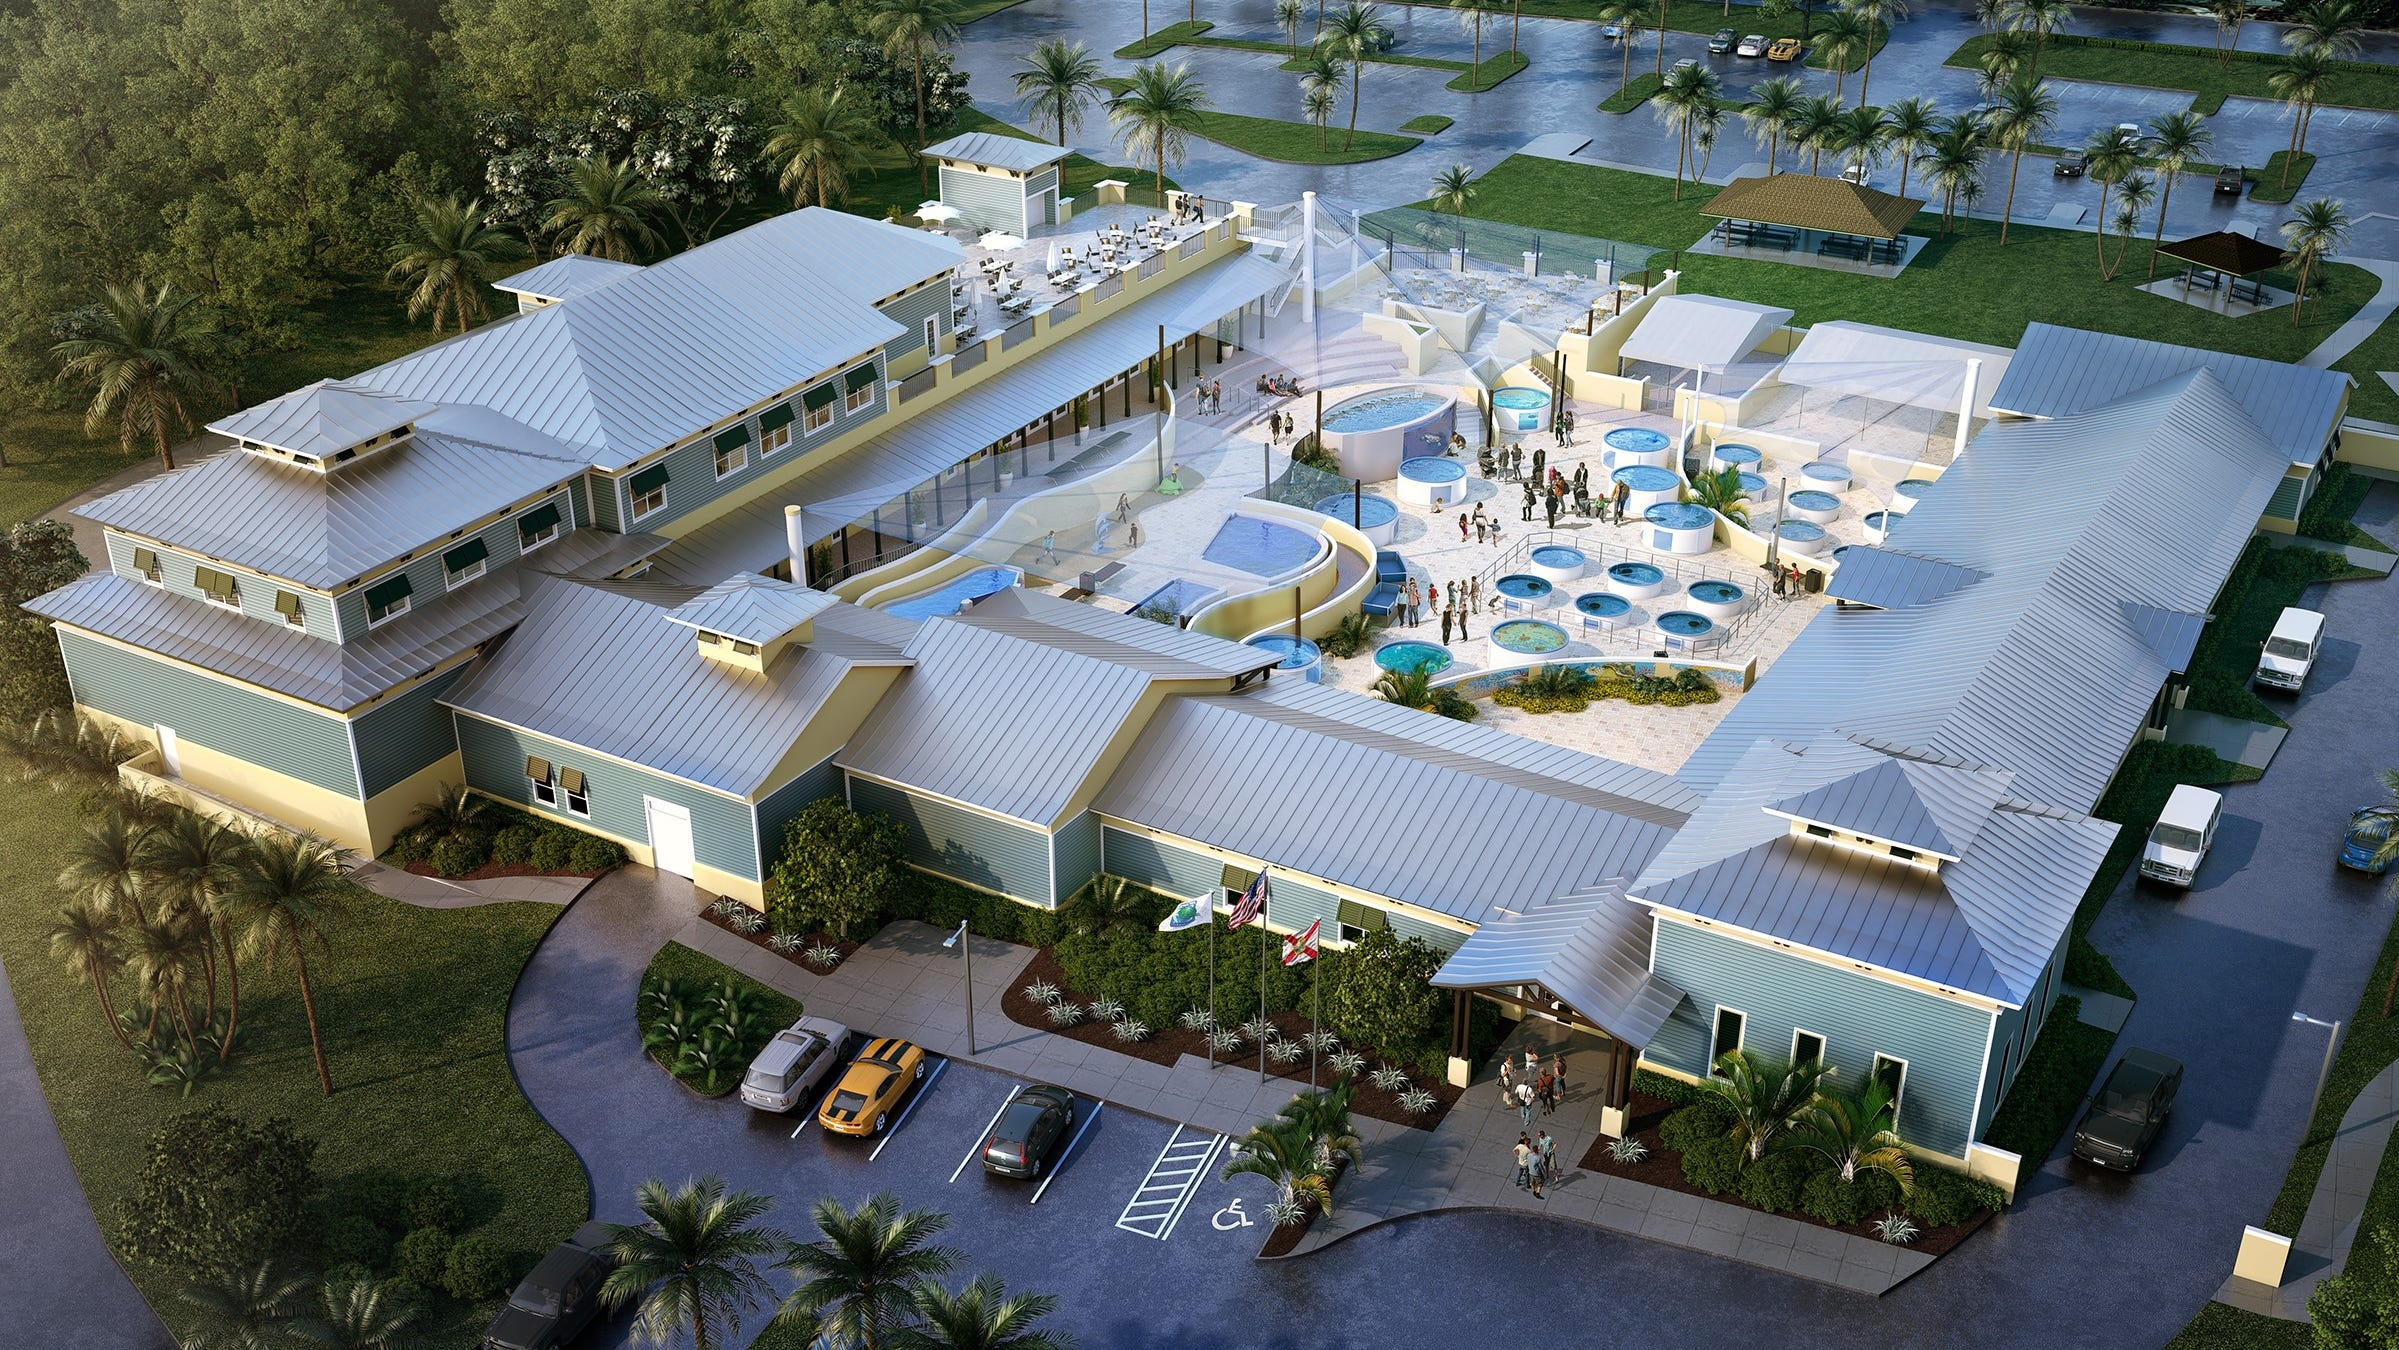 Loggerhead Marinelife Center expansion on track for 2021 opening; gift shop first sign of changes - Palm Beach Post